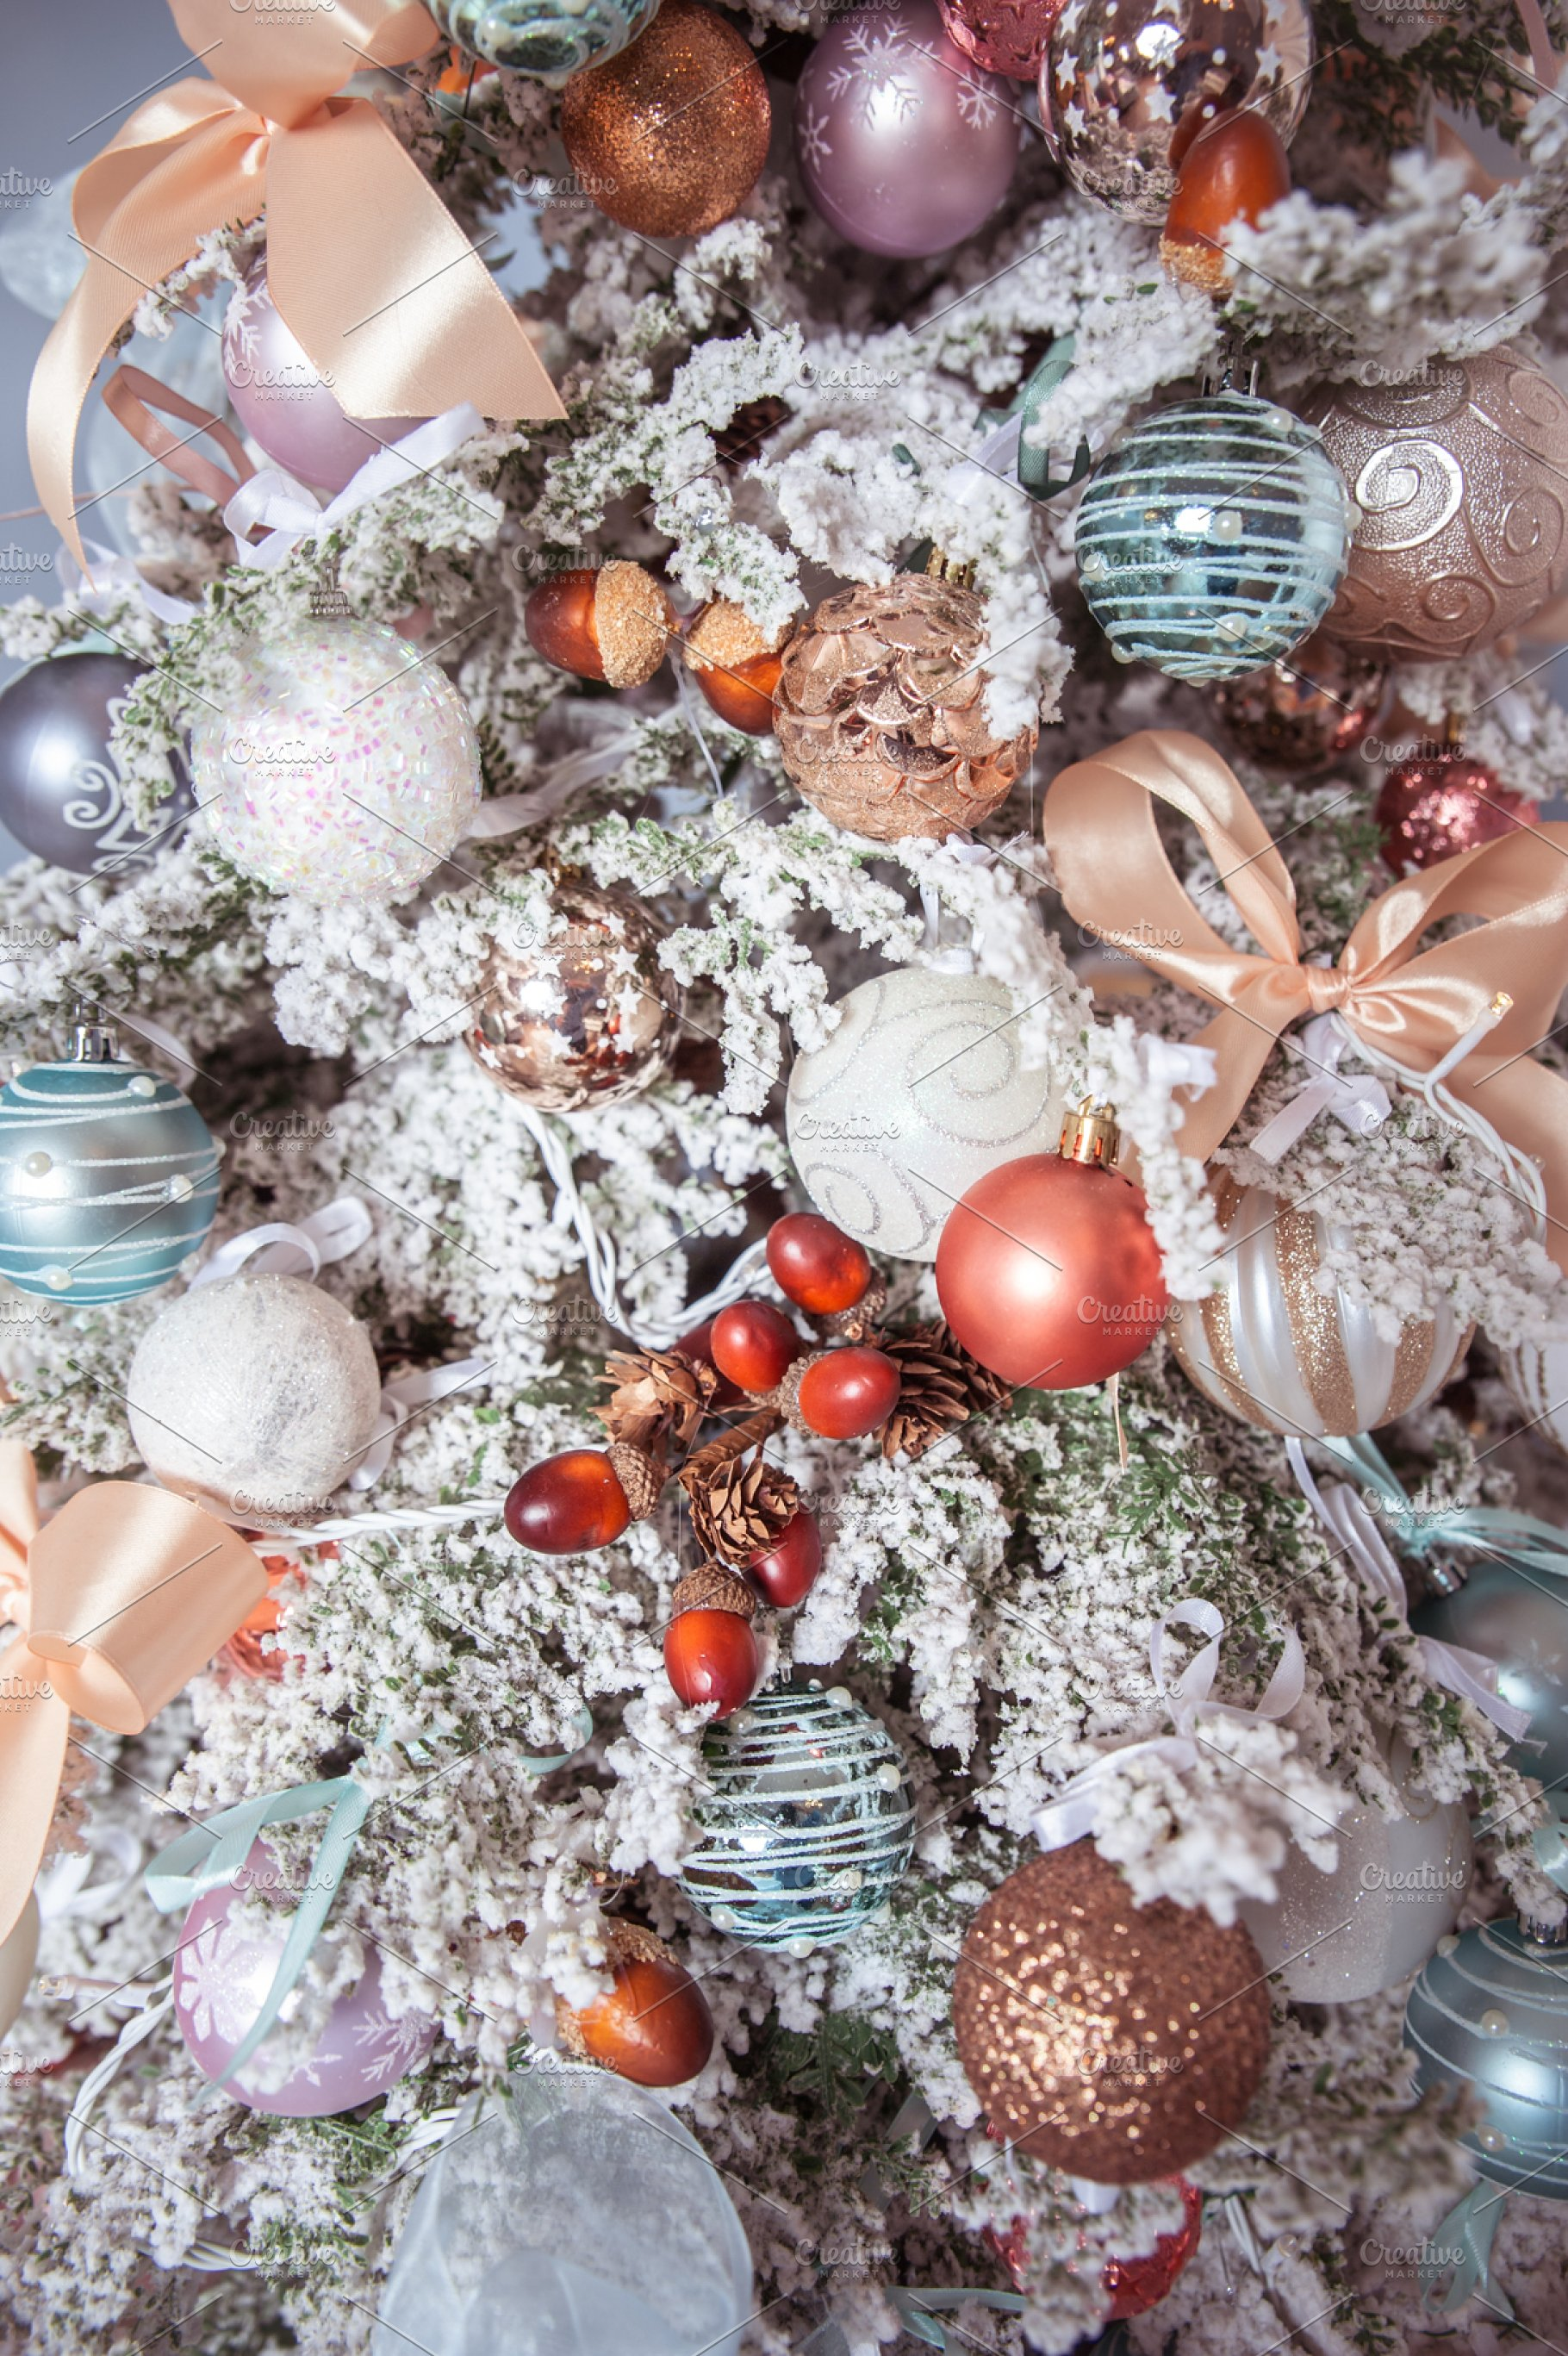 Pics Of Decorated Christmas Trees.White Decorated Christmas Tree Close